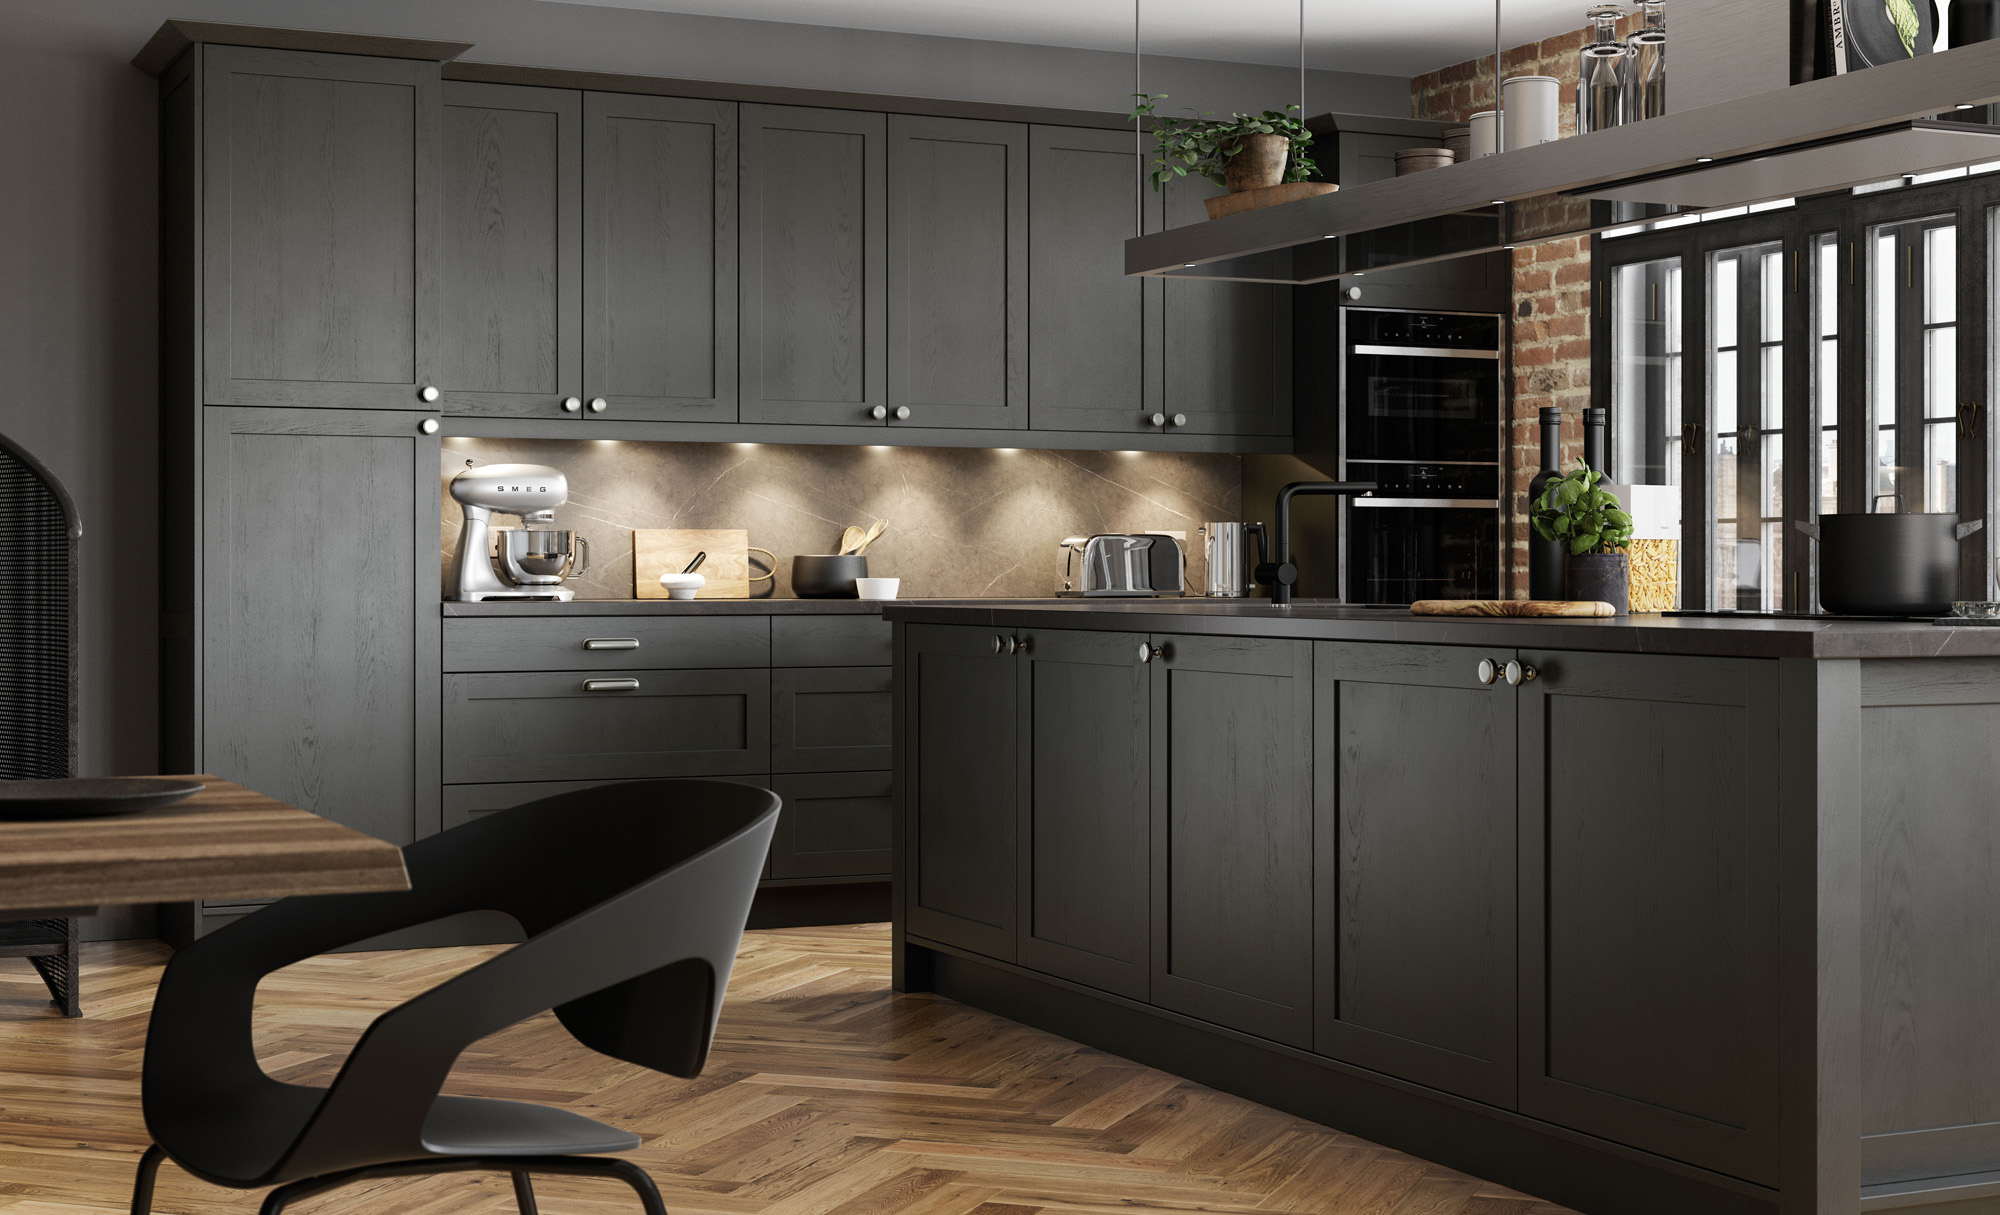 2021 Dorene French Country Style Multi Function Knock Down Black Unpainted Curved Rounded Retro Oak Solid Wood Kitchens Cabinets Buy Kitchen Cabinets Solid Wood French Kitchen Cabinets Wood Kitchen Cabinets Product On Alibaba Com